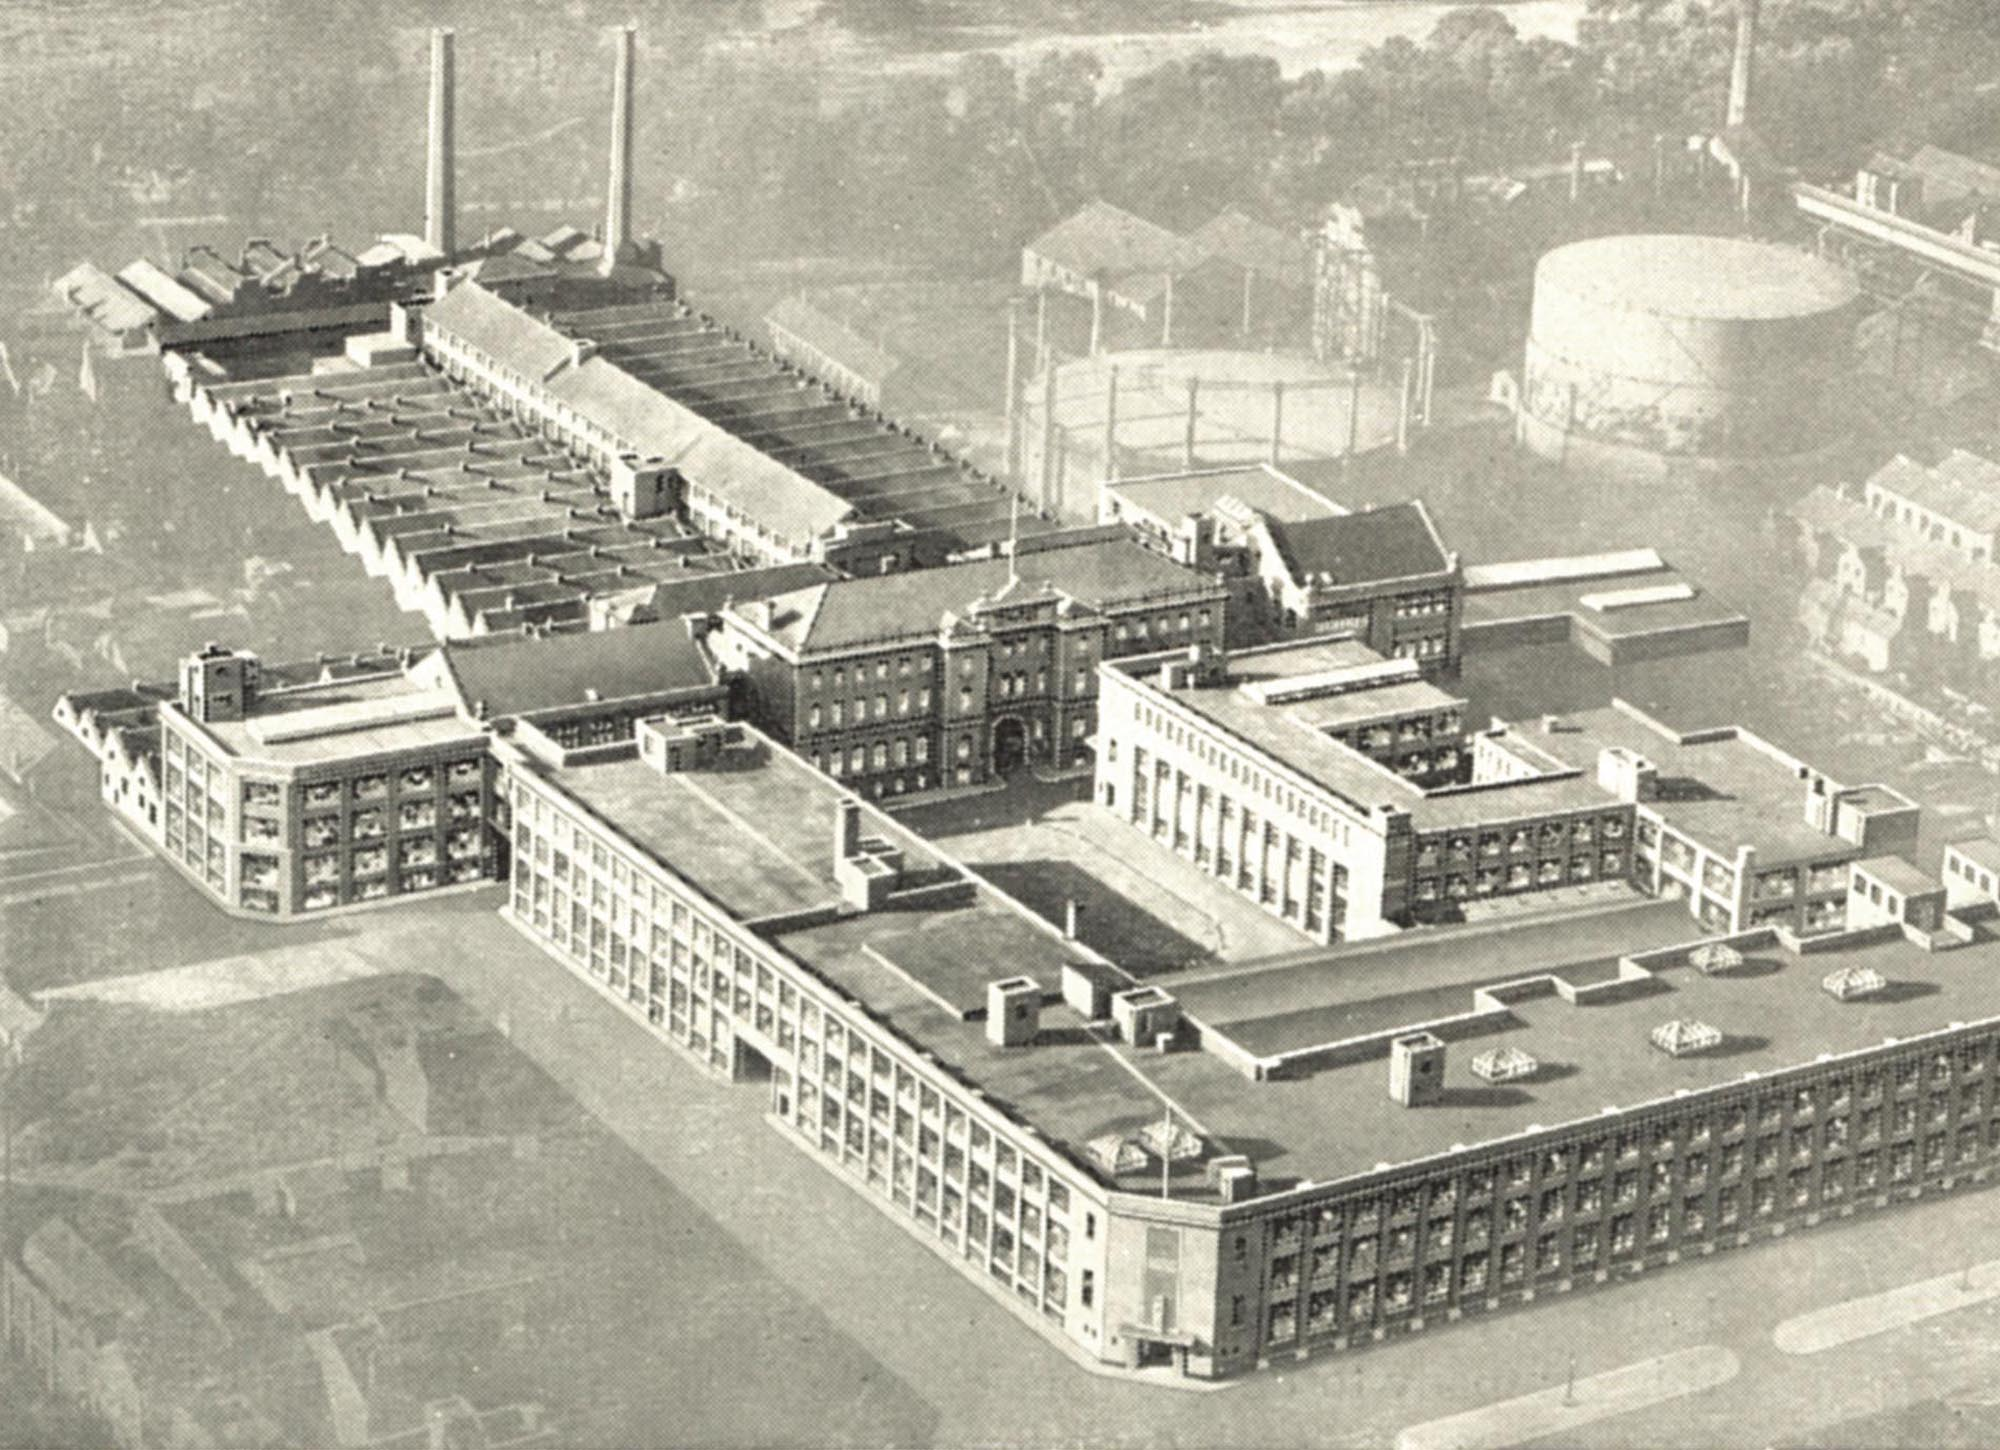 St Margaret's Works. From an article on Corah in 'Leicester Official Handbook 1954' -